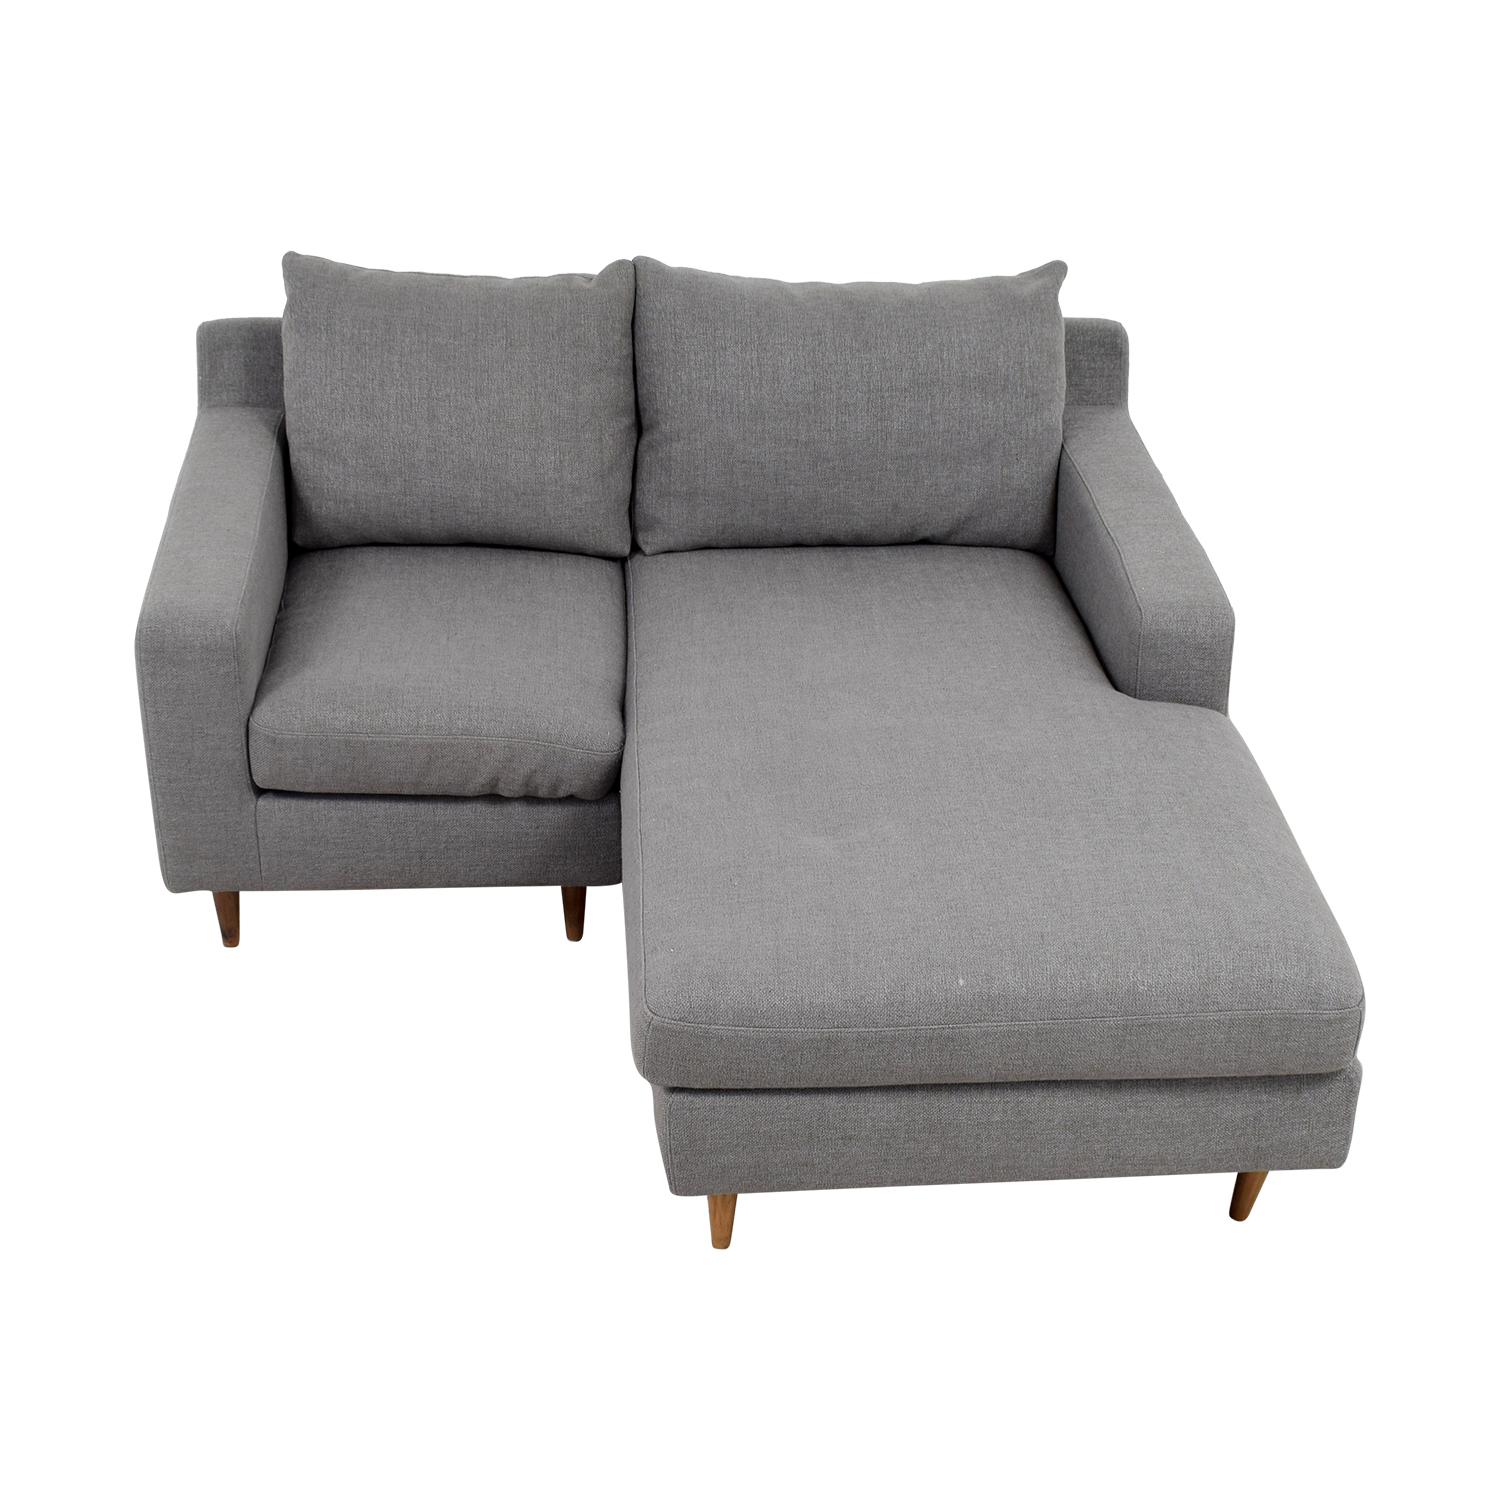 Interior Define Interior Define Custom Grey Loveseat with Chaise coupon